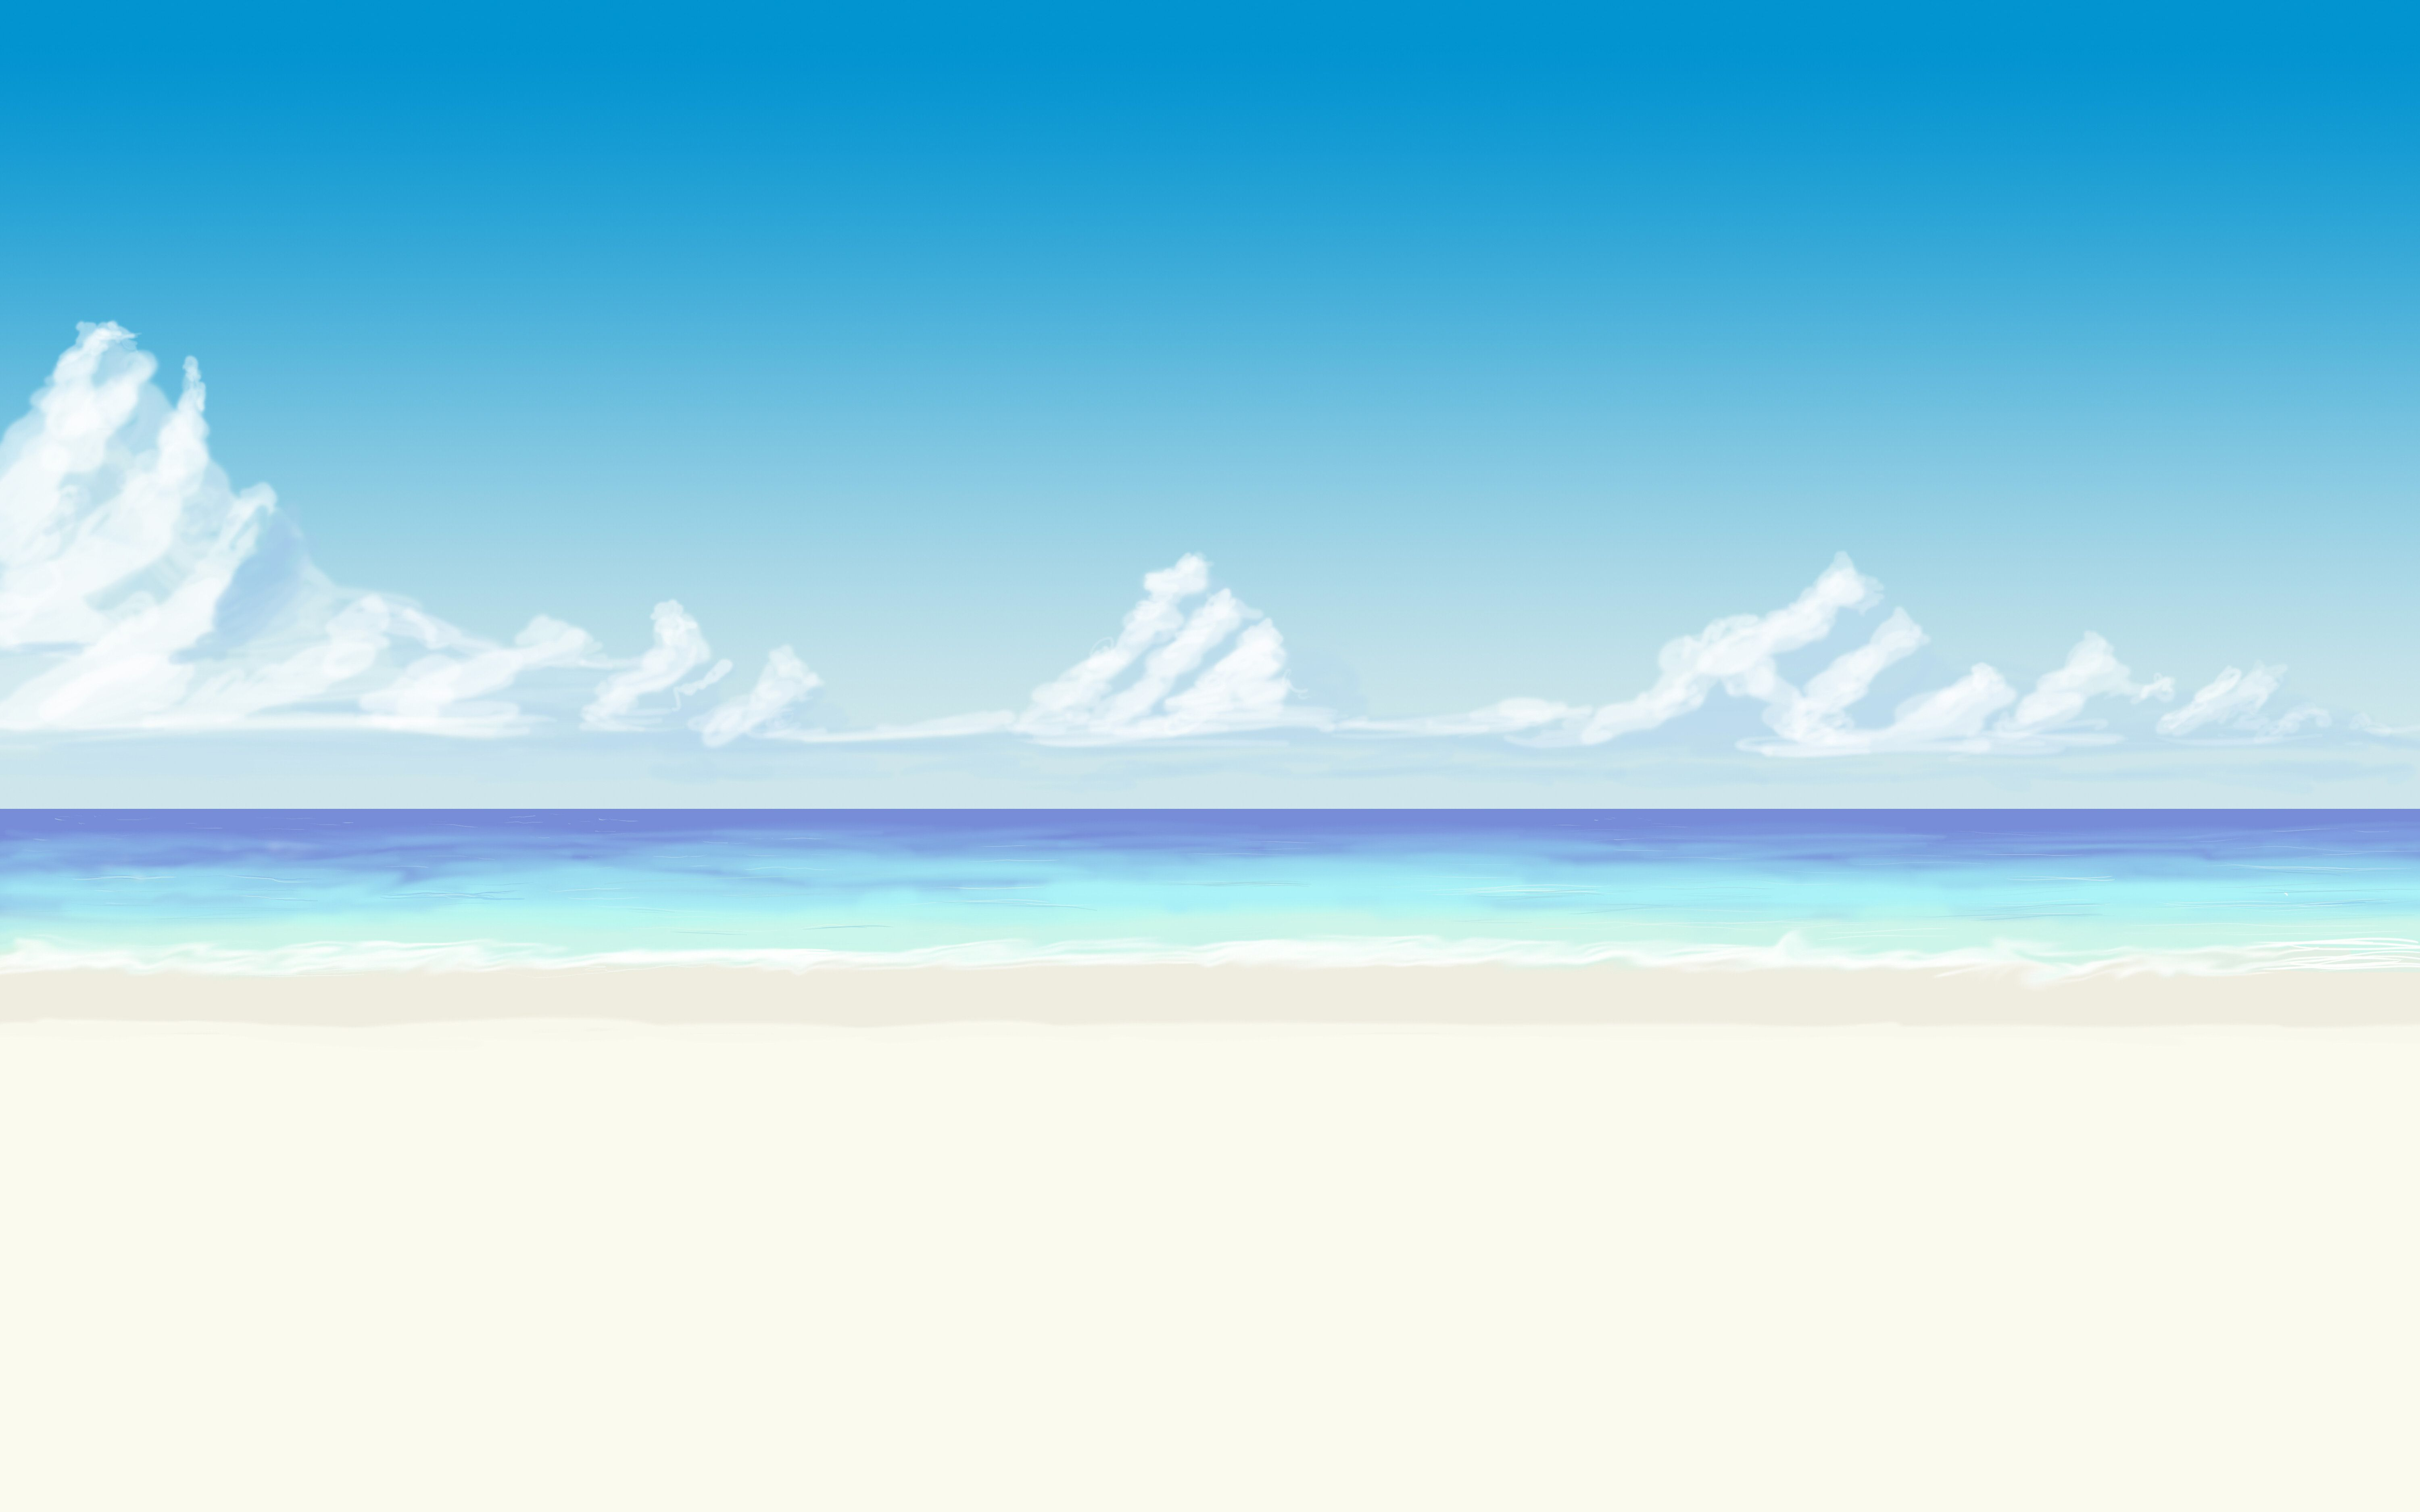 Backdrop Idea For Beach Party Photo Booth Anime Scenery Wallpaper Scenery Wallpaper Beach Background